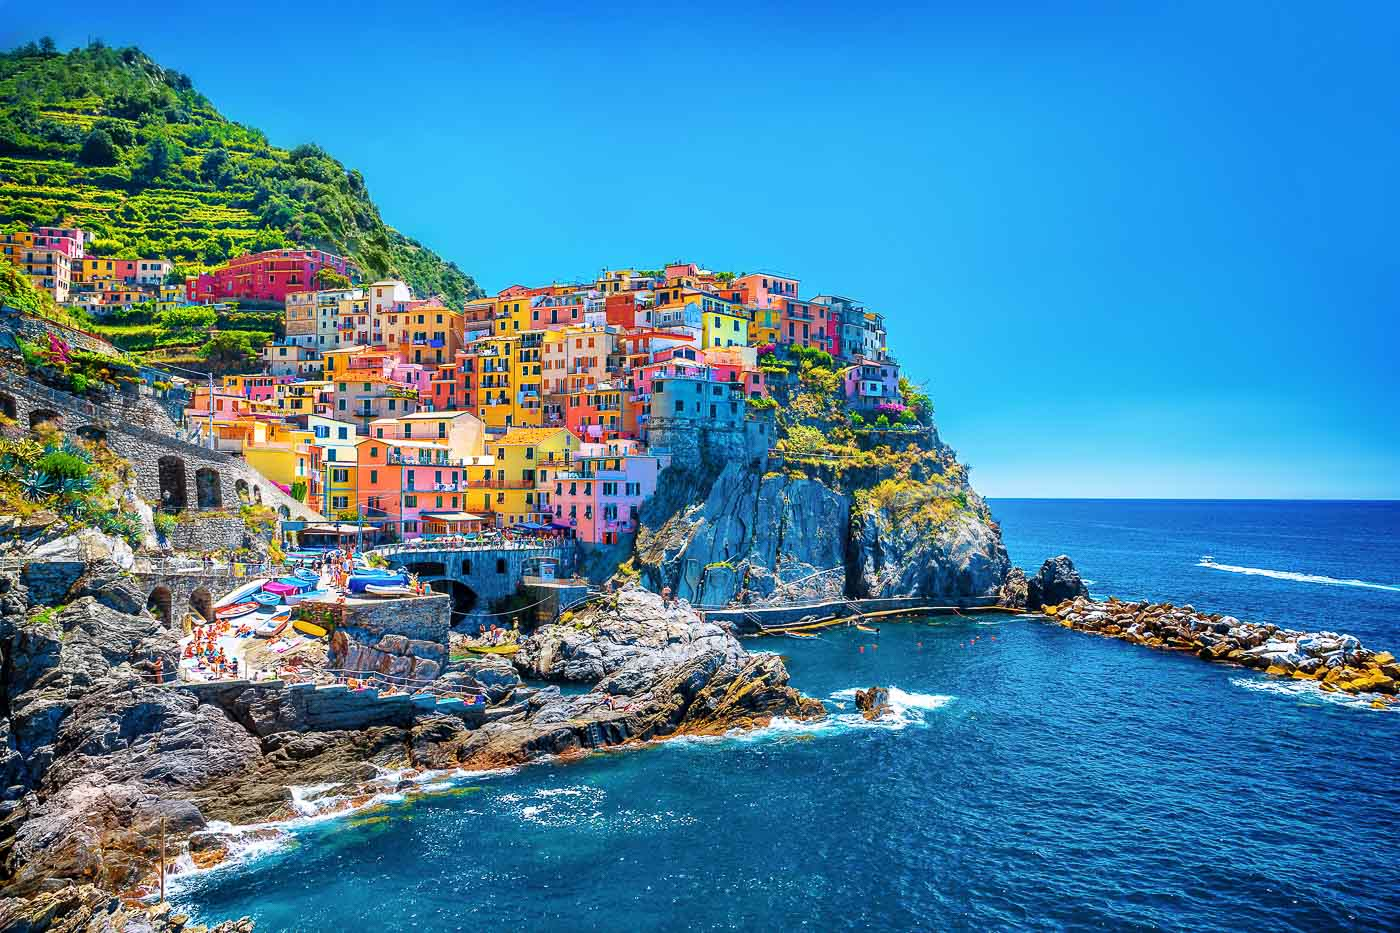 Colourful Cities by Zayah World - Cinque Terre, Italy